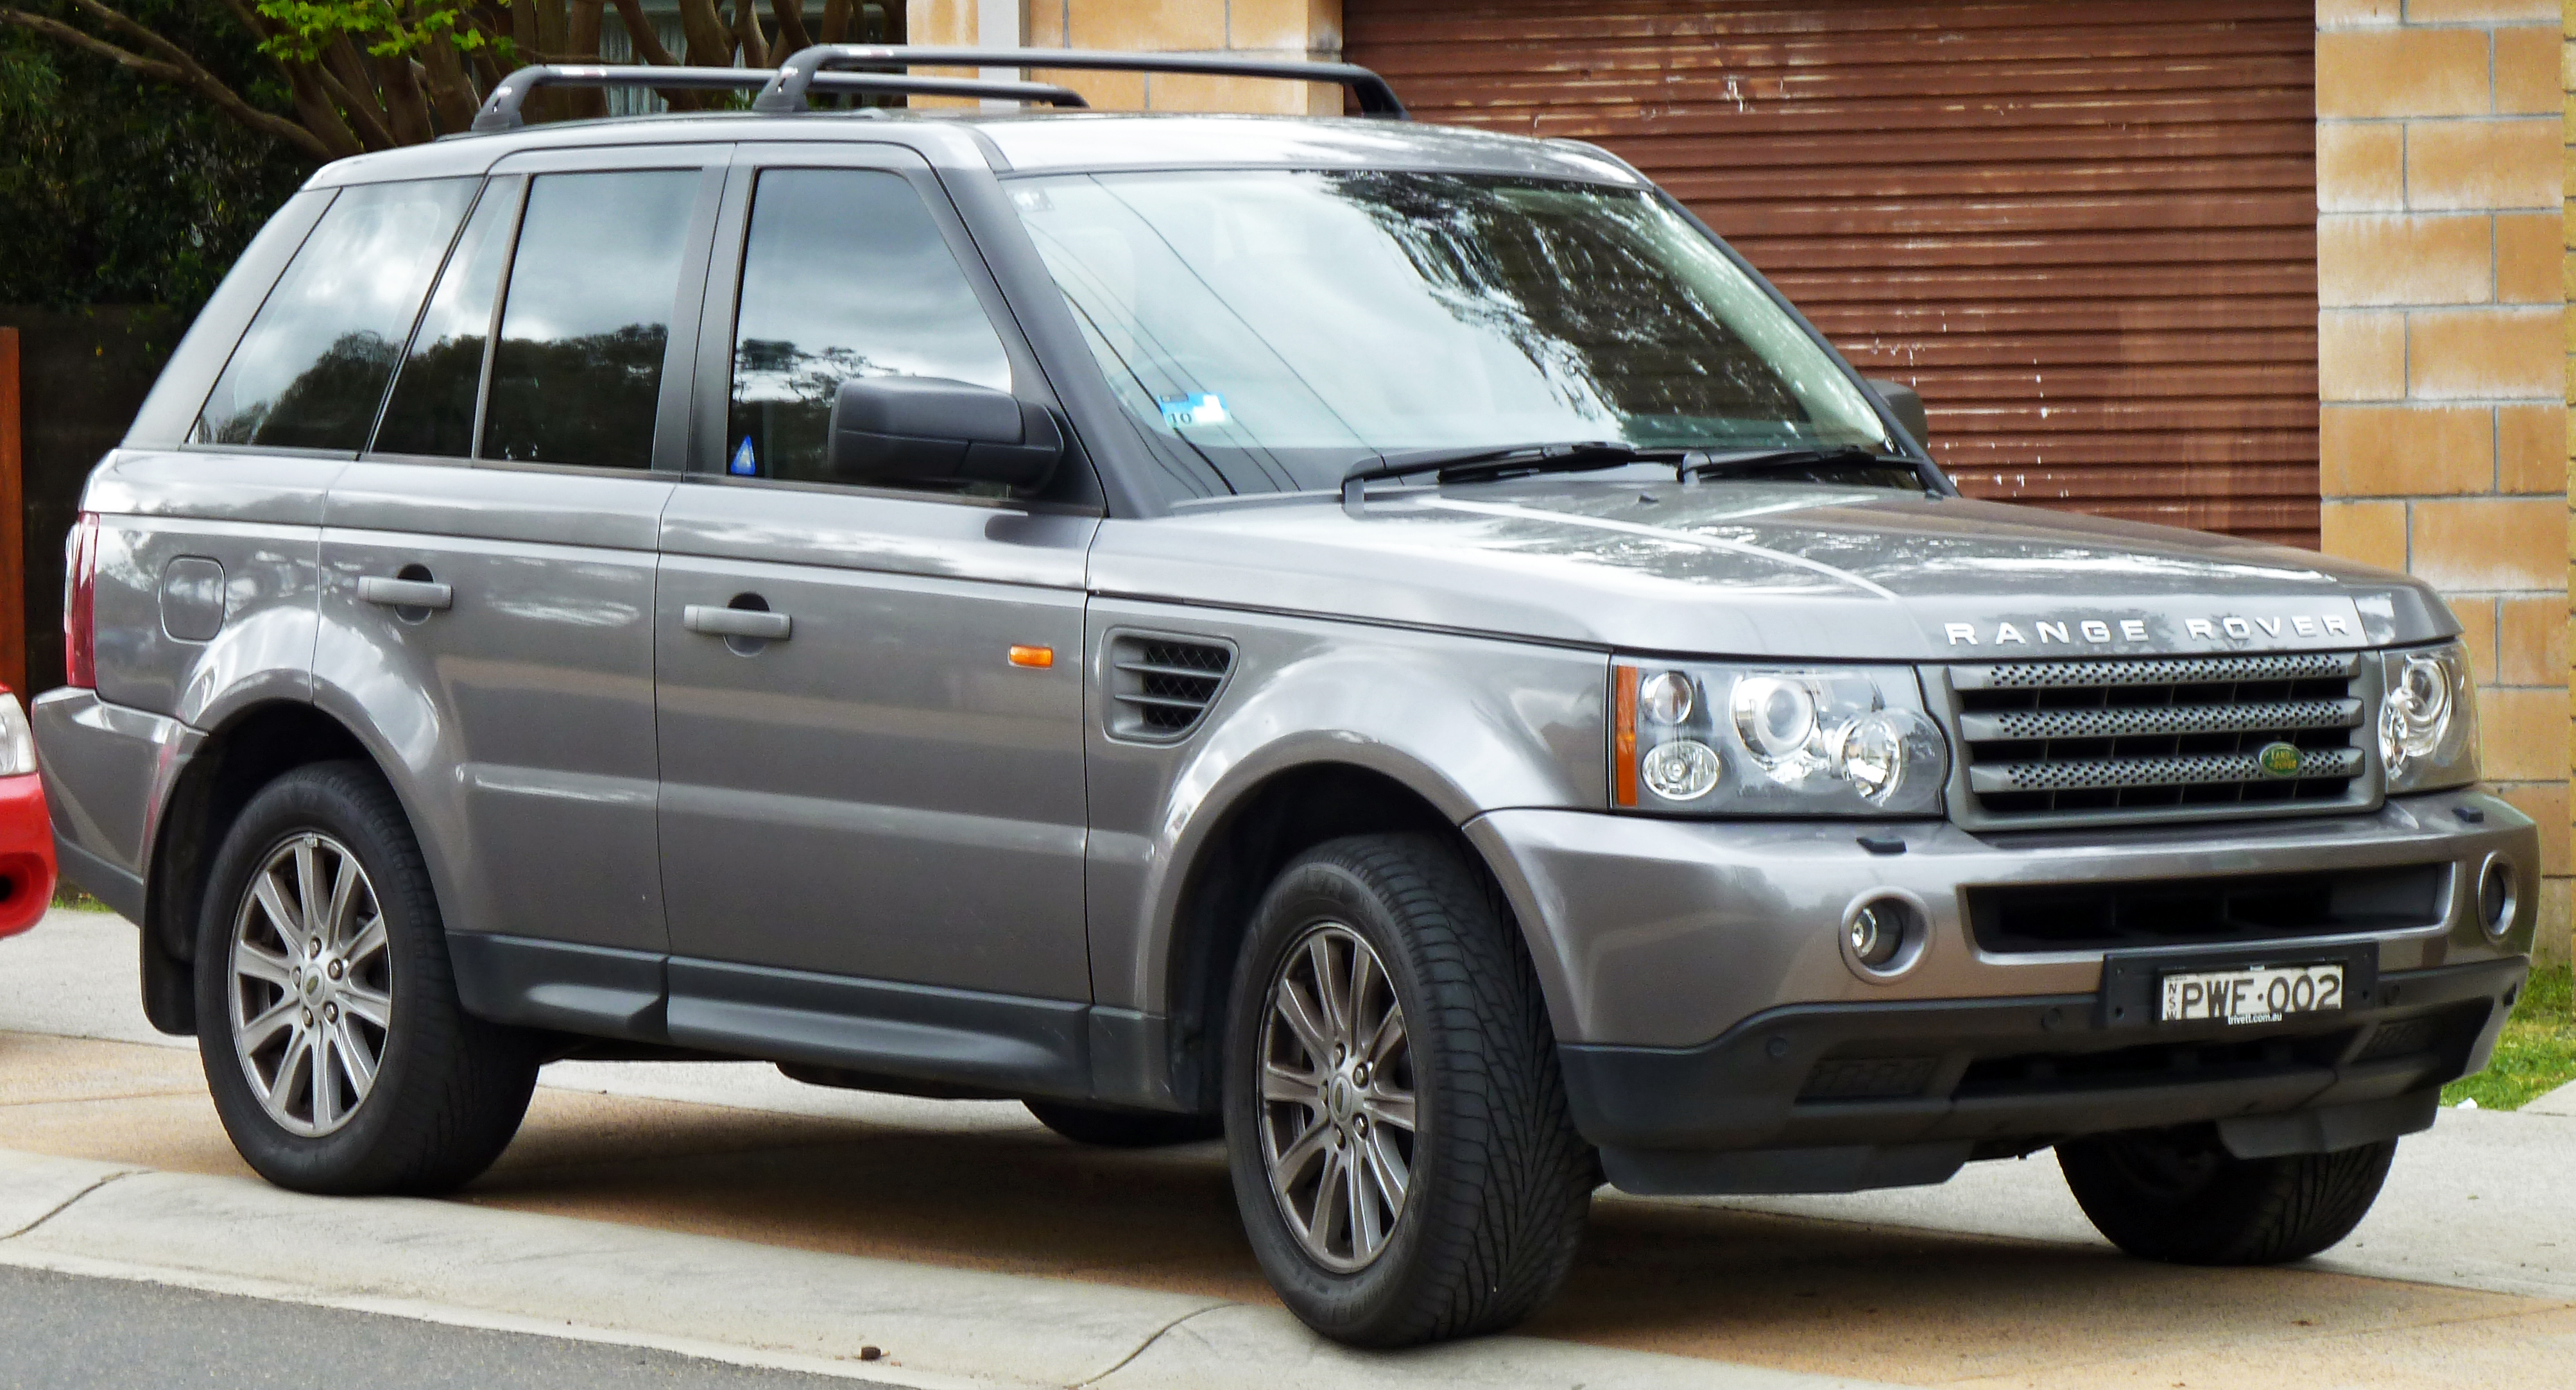 lane car the studio is discovery improved rover mucho crossover landrover land lr much hi fast o